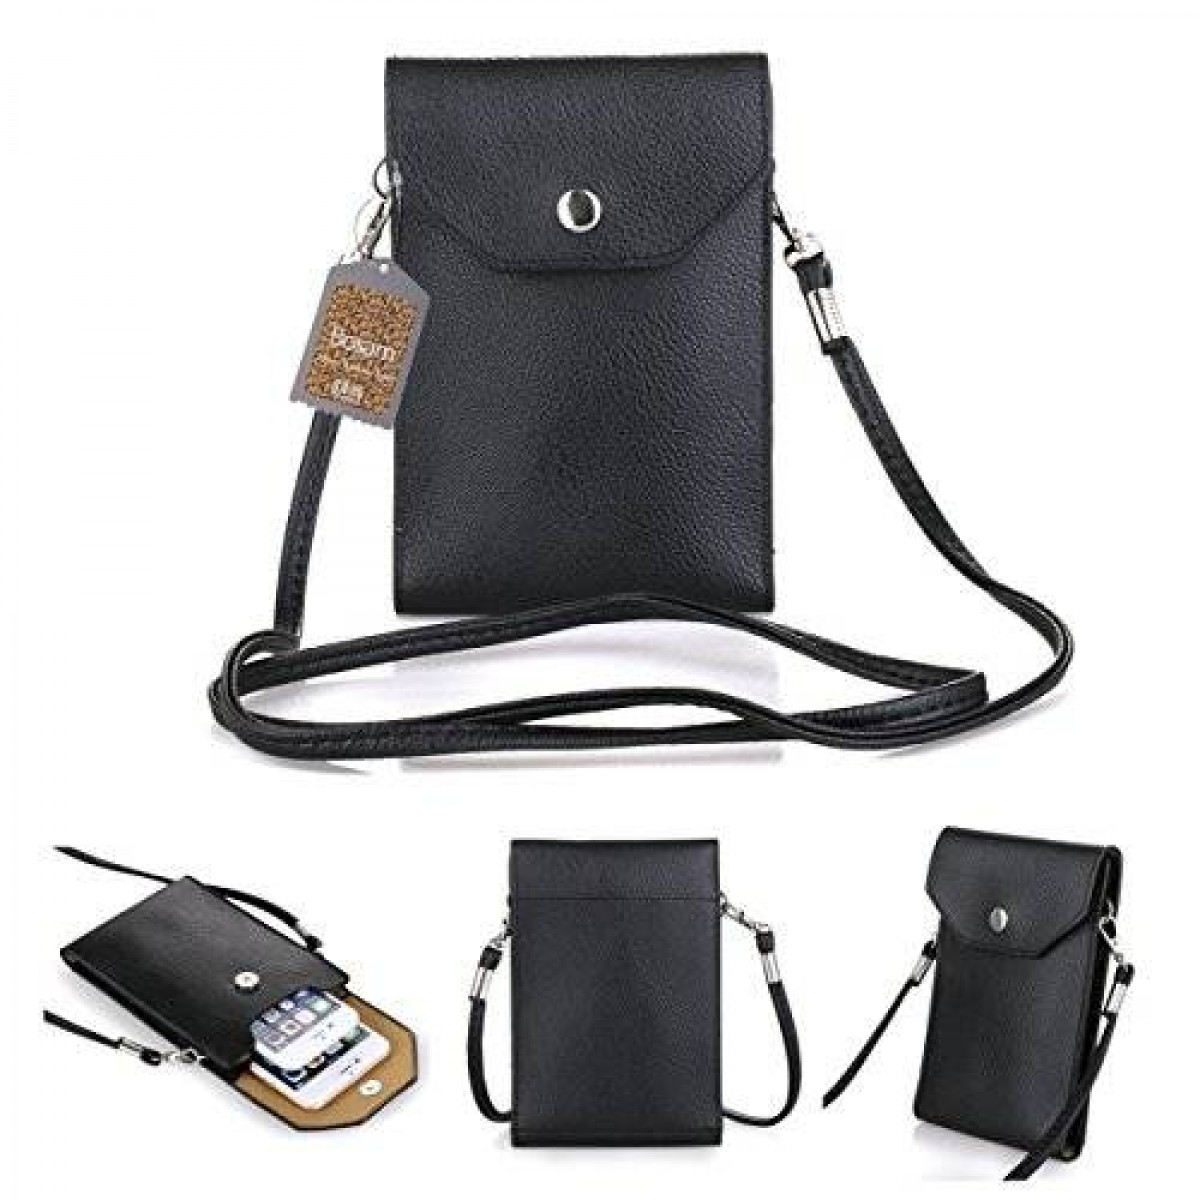 reputable site 90717 ae274 Bosam Girls Mini Shoulder Crossbody PU Leather Cellphone Carrying Case Bag  for 5.5-Inch Smartphones - c Black